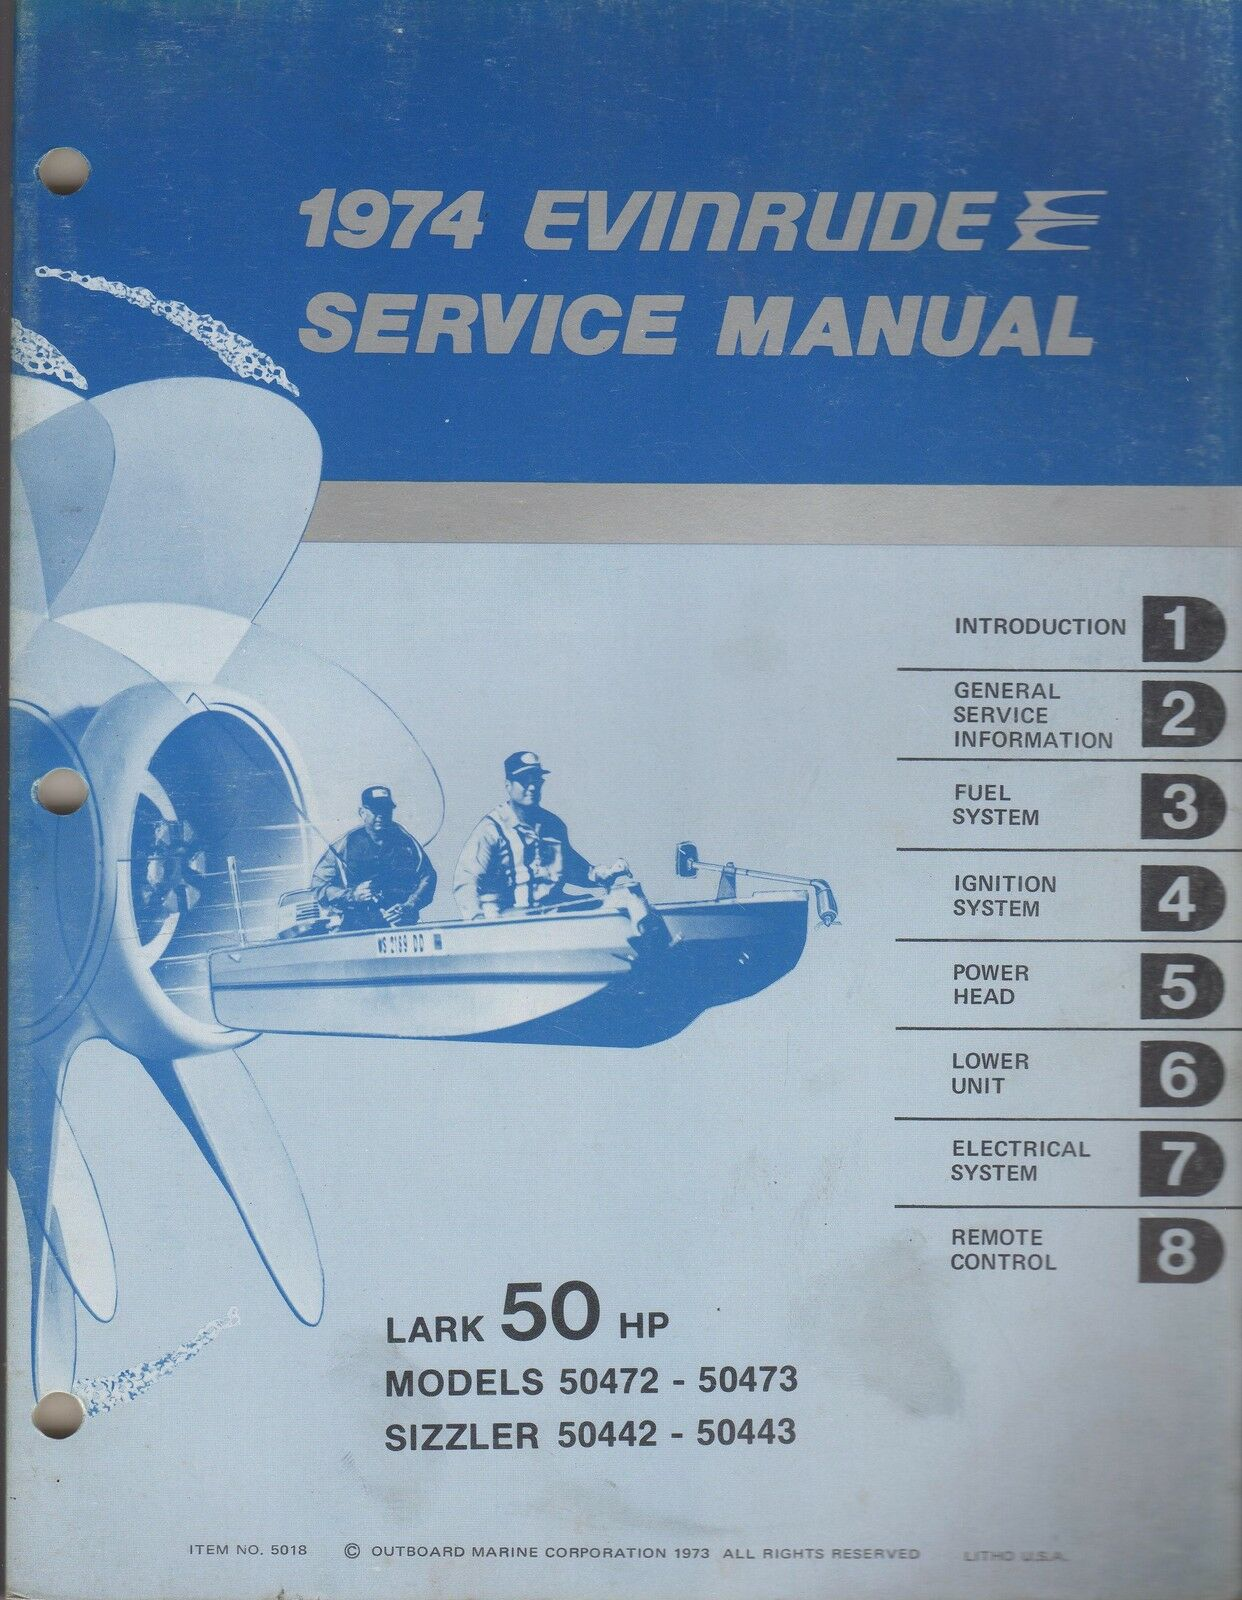 1974 Evinrude Outboard Lark 50 Hp Models Service Manual Used 1 of 1FREE  Shipping ...